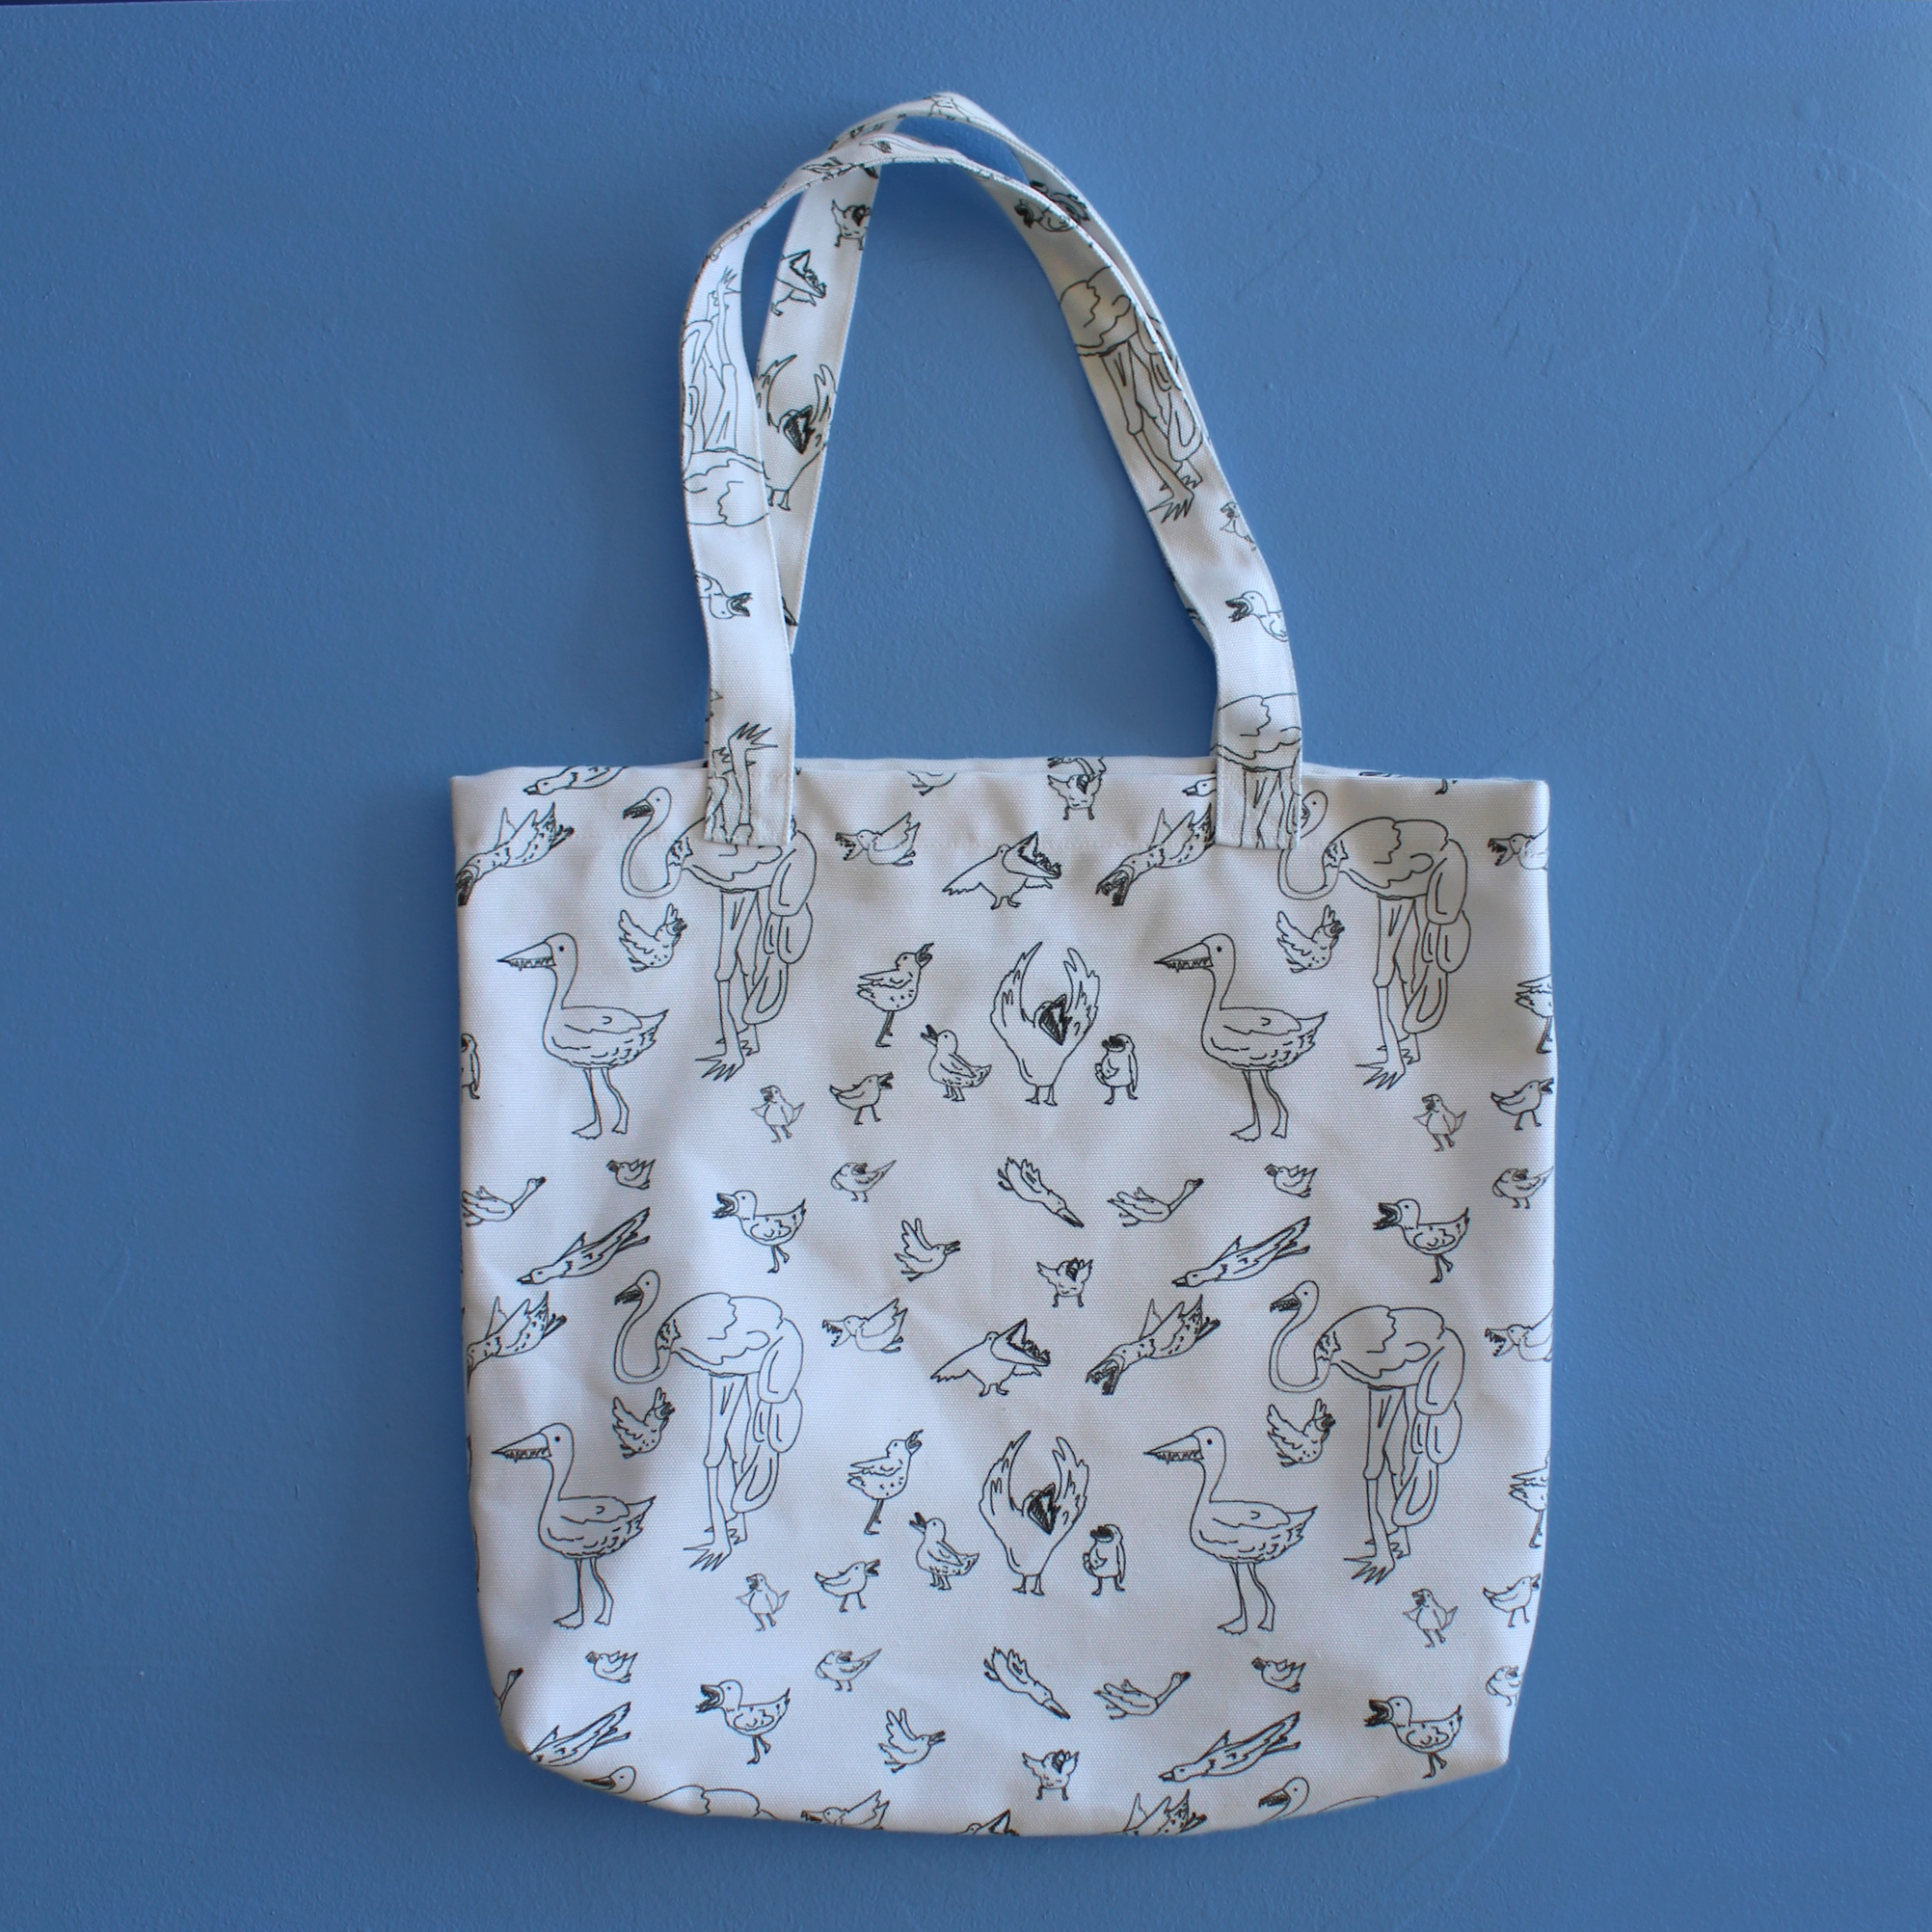 Birds with Teeth Tote!